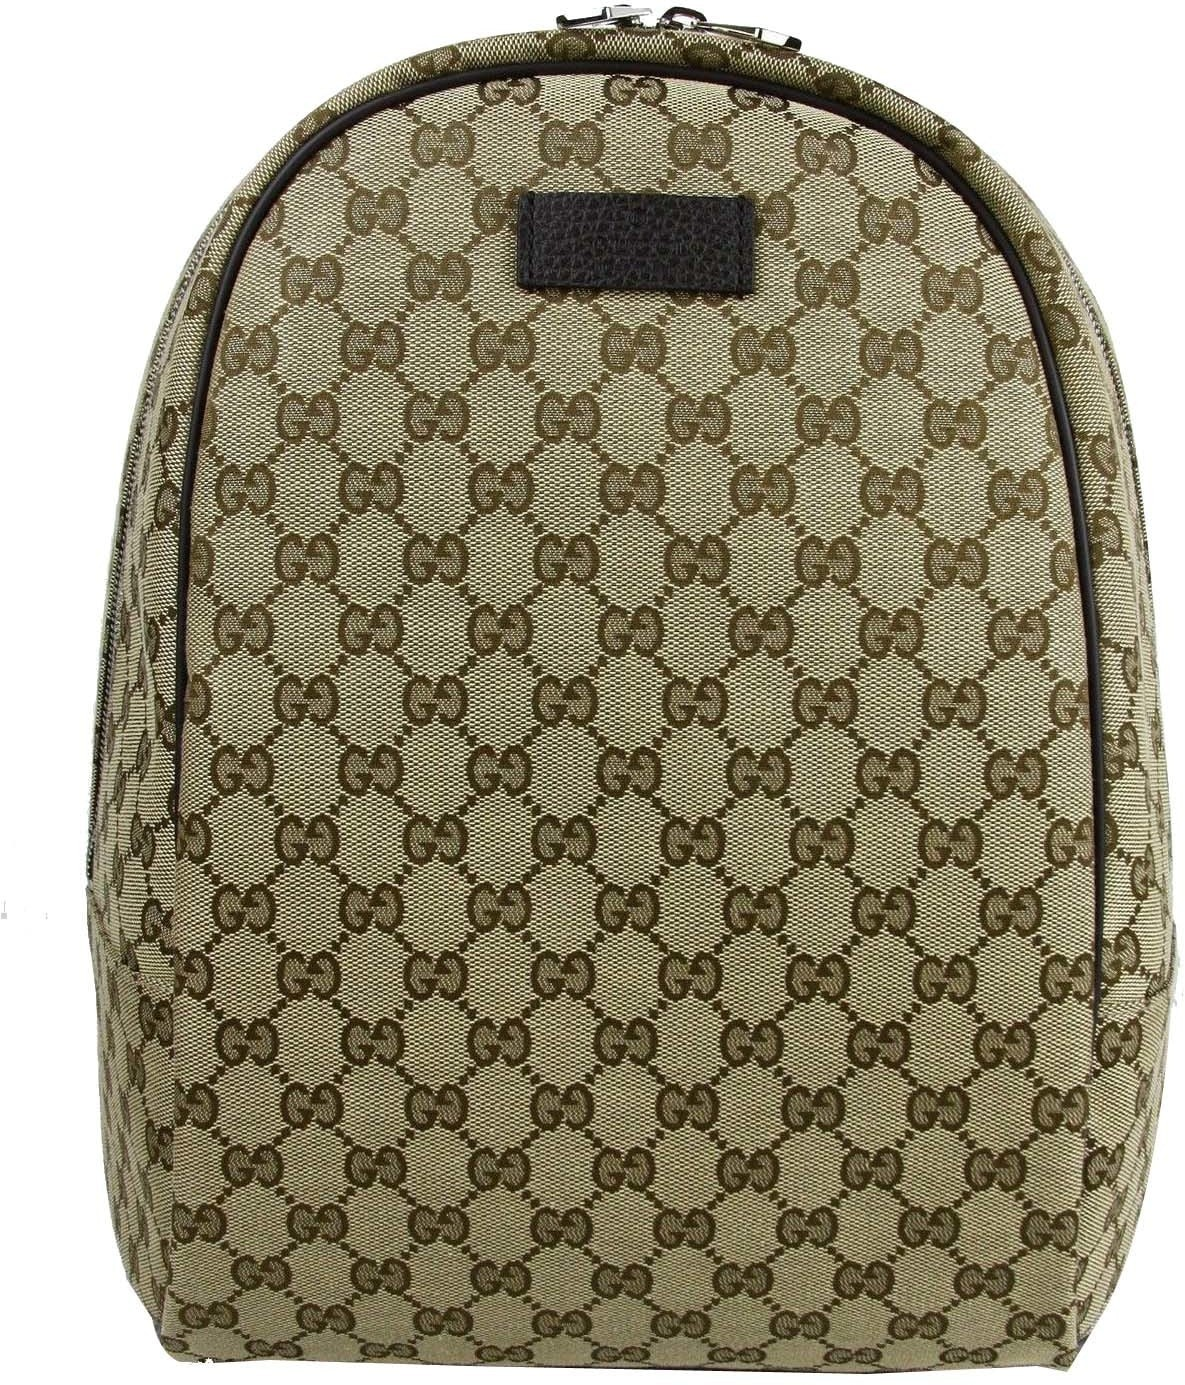 Gucci Top Zip Backpack Monogram GG Beige/Brown